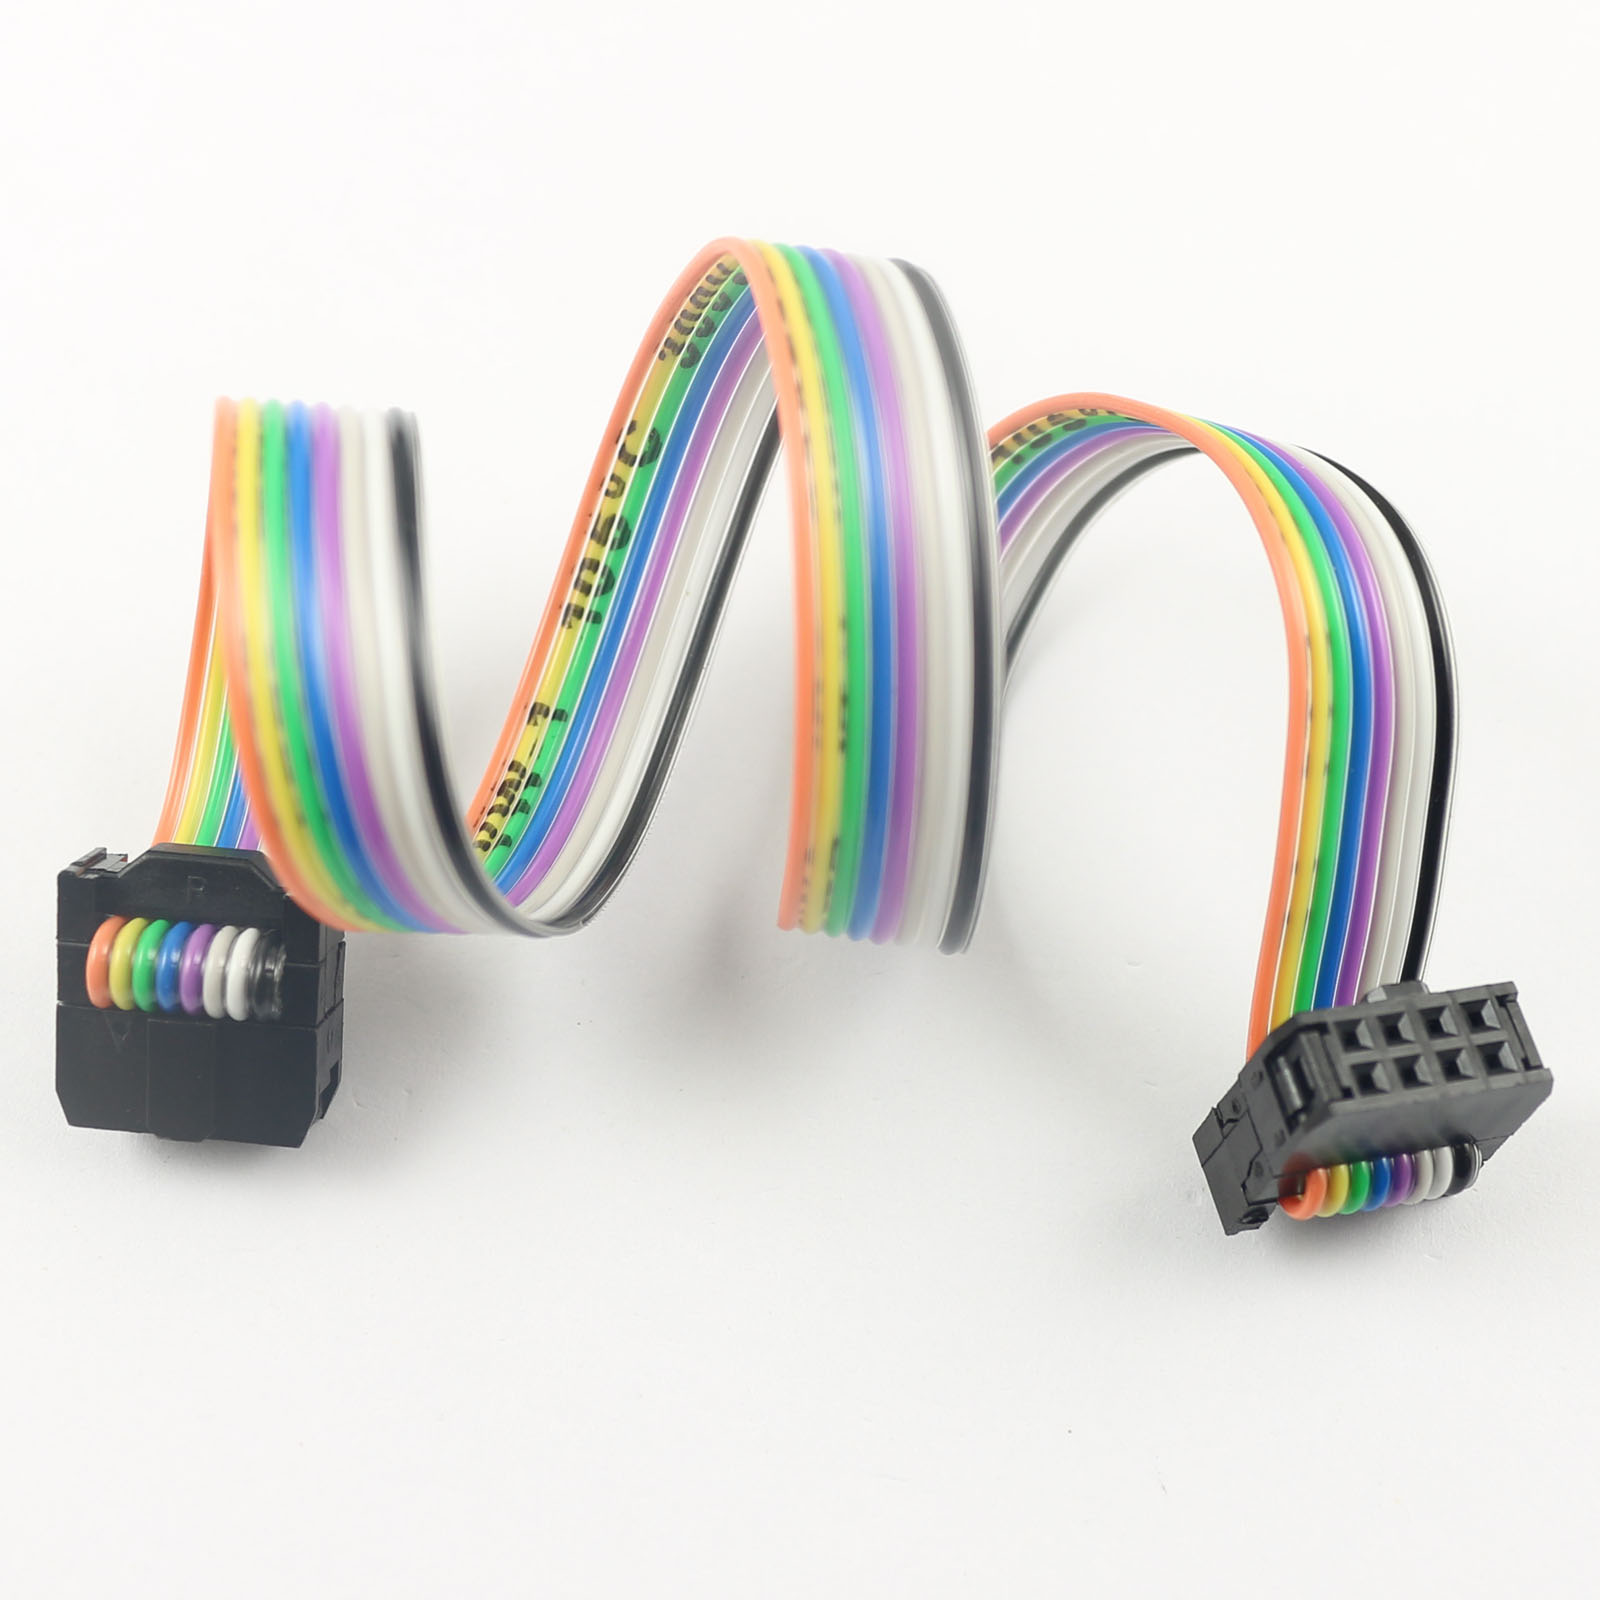 8 Pin Ribbon Cable Connector : Pcs mm pitch pin wire idc flat ribbon